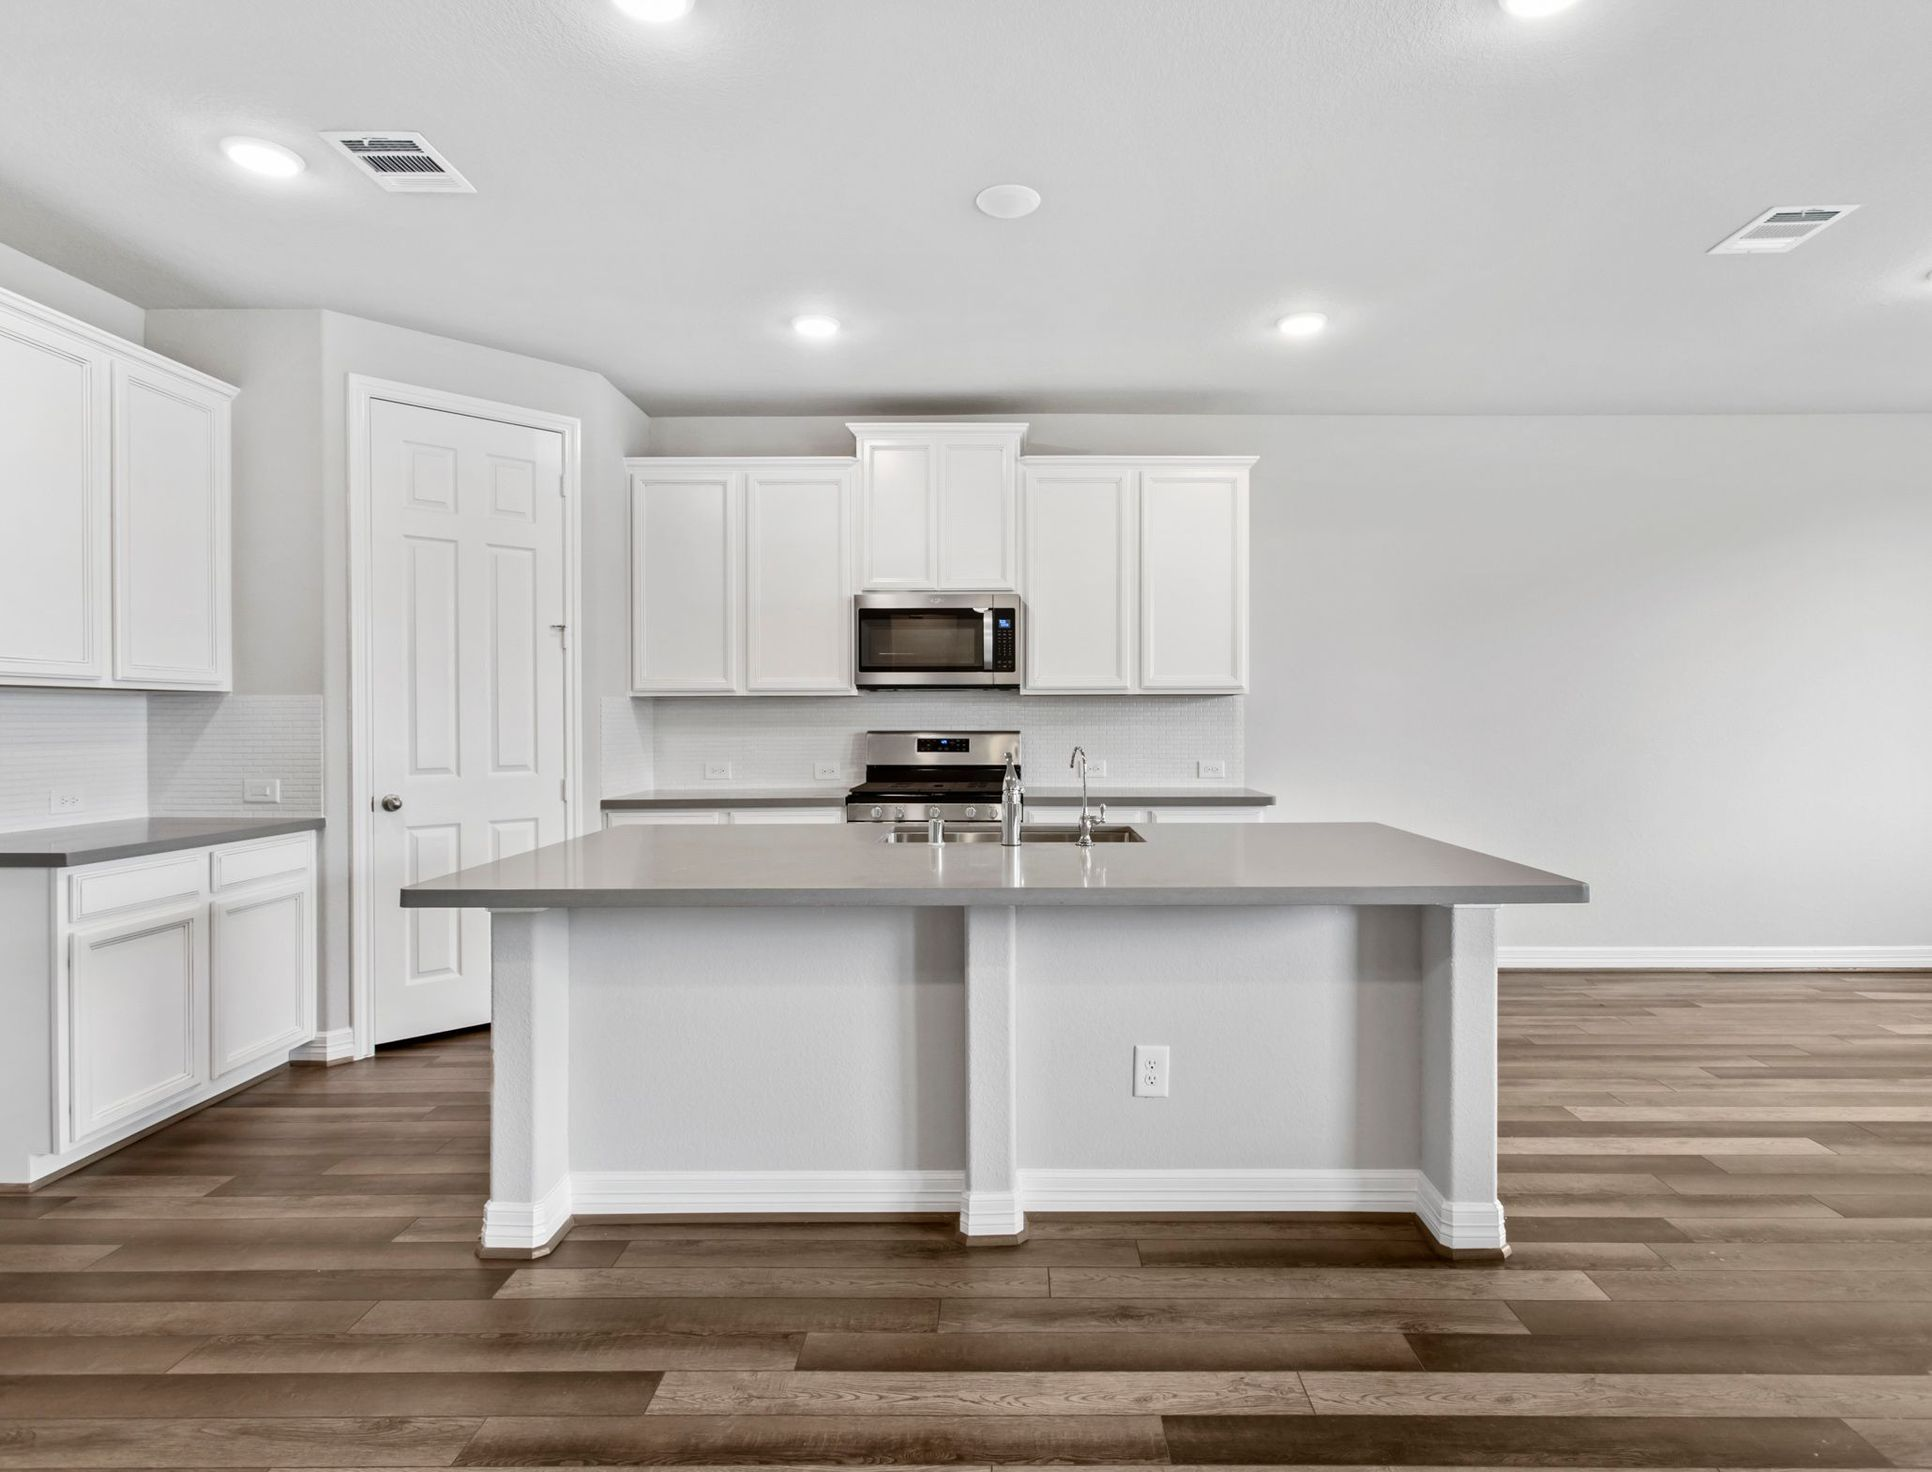 Interior:The Meadows at Imperial Oaks 50ft - Edison Interior Image 1